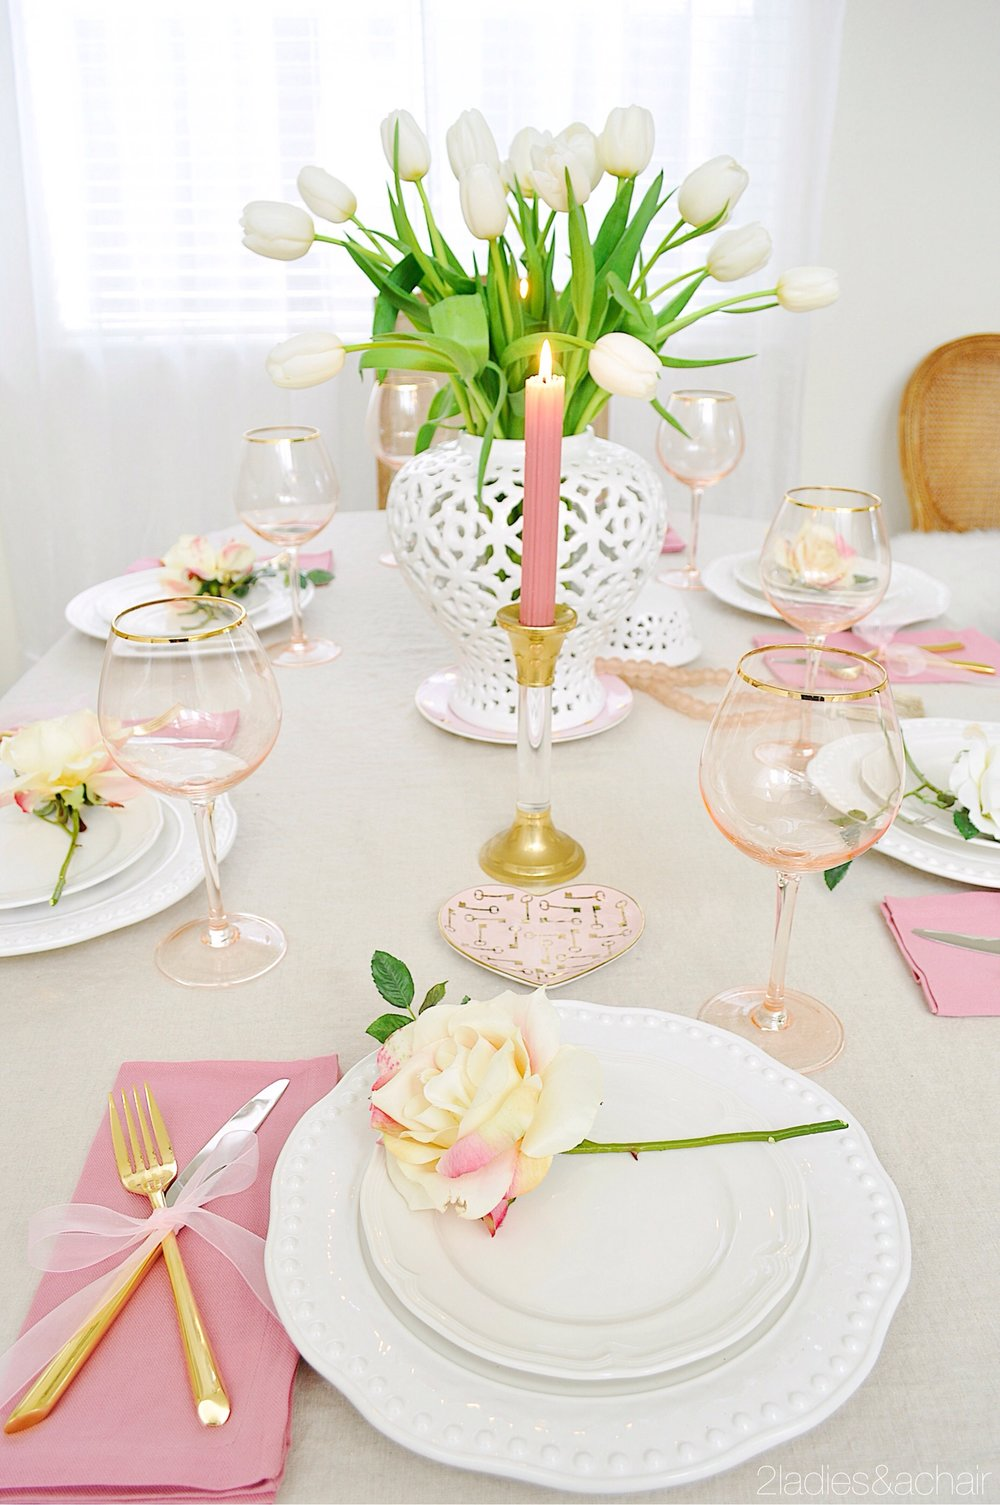 valentine's day table decor IMG_8954.JPG